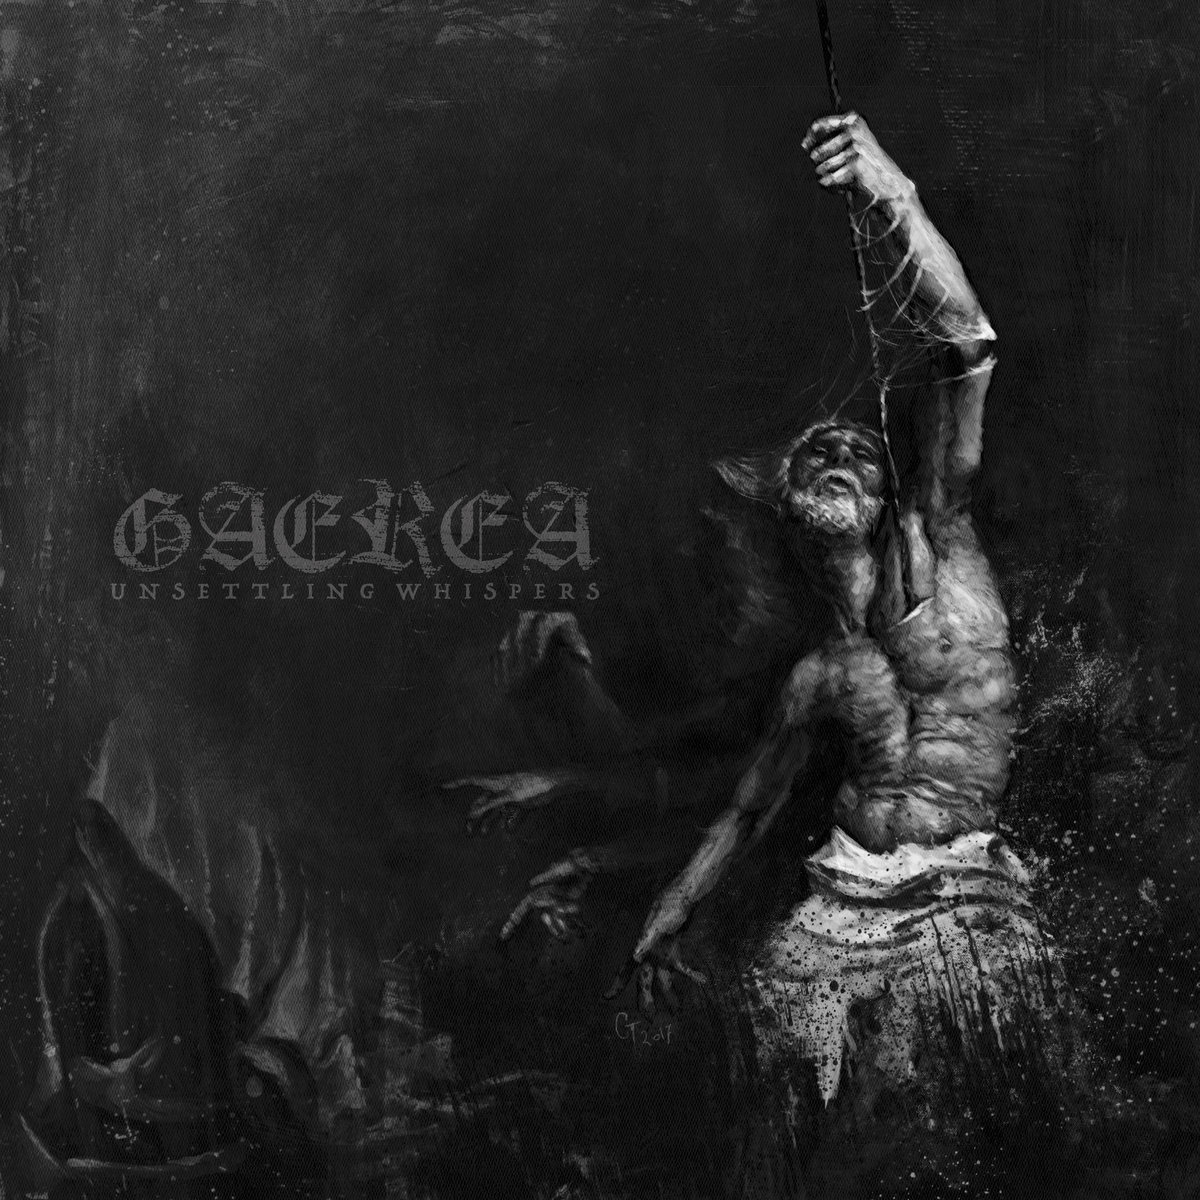 Gaerea - 'Unsettling Whispers' 8-Panel Digipak CD with 20-Page Booklet